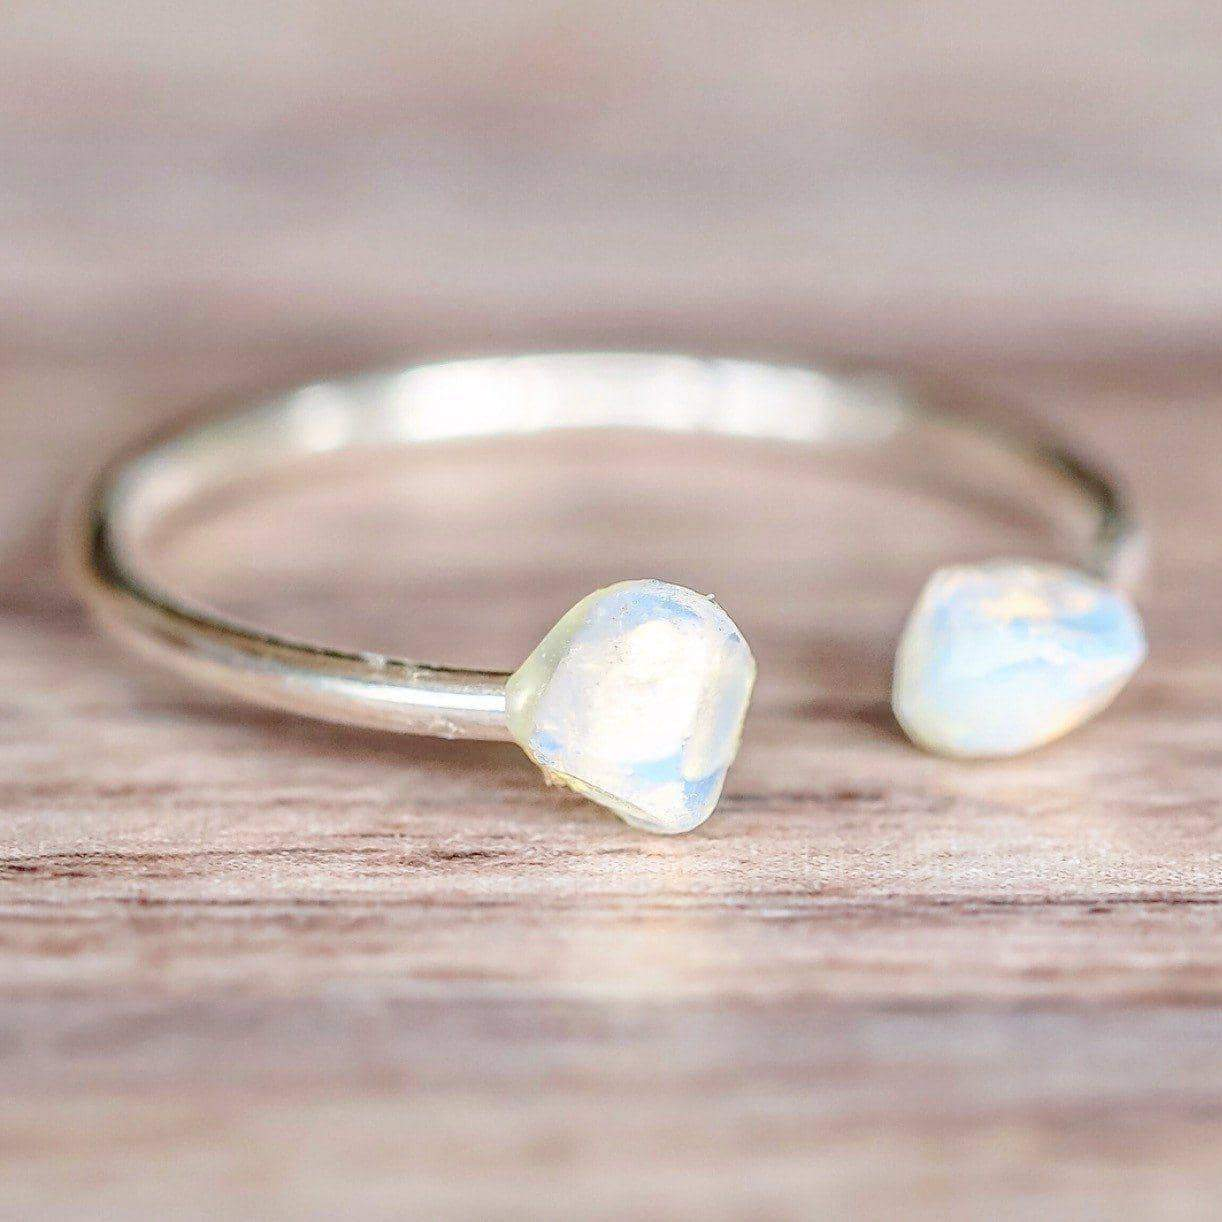 Silver Little Raw Opal Ring | Bohemian Gypsy Festival Jewellery | Indie and Harper